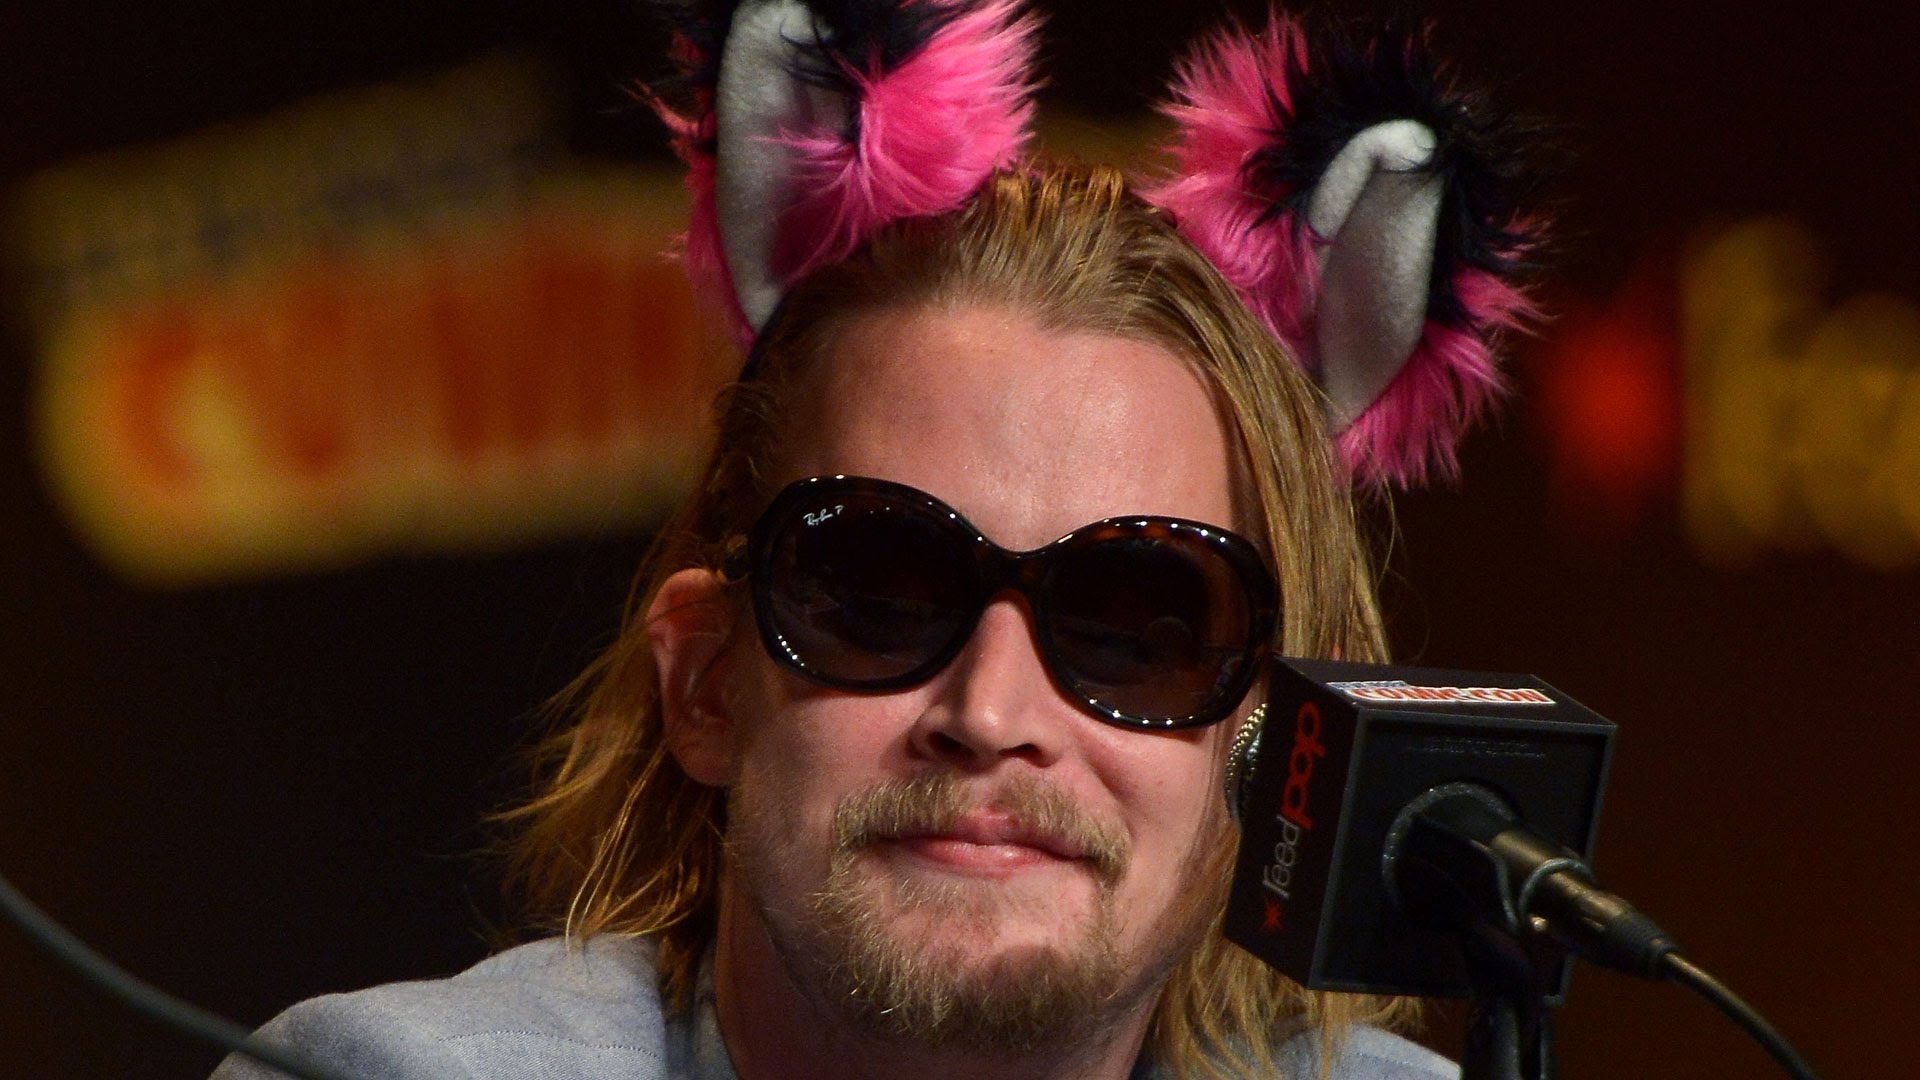 Macaulay Culkin Background